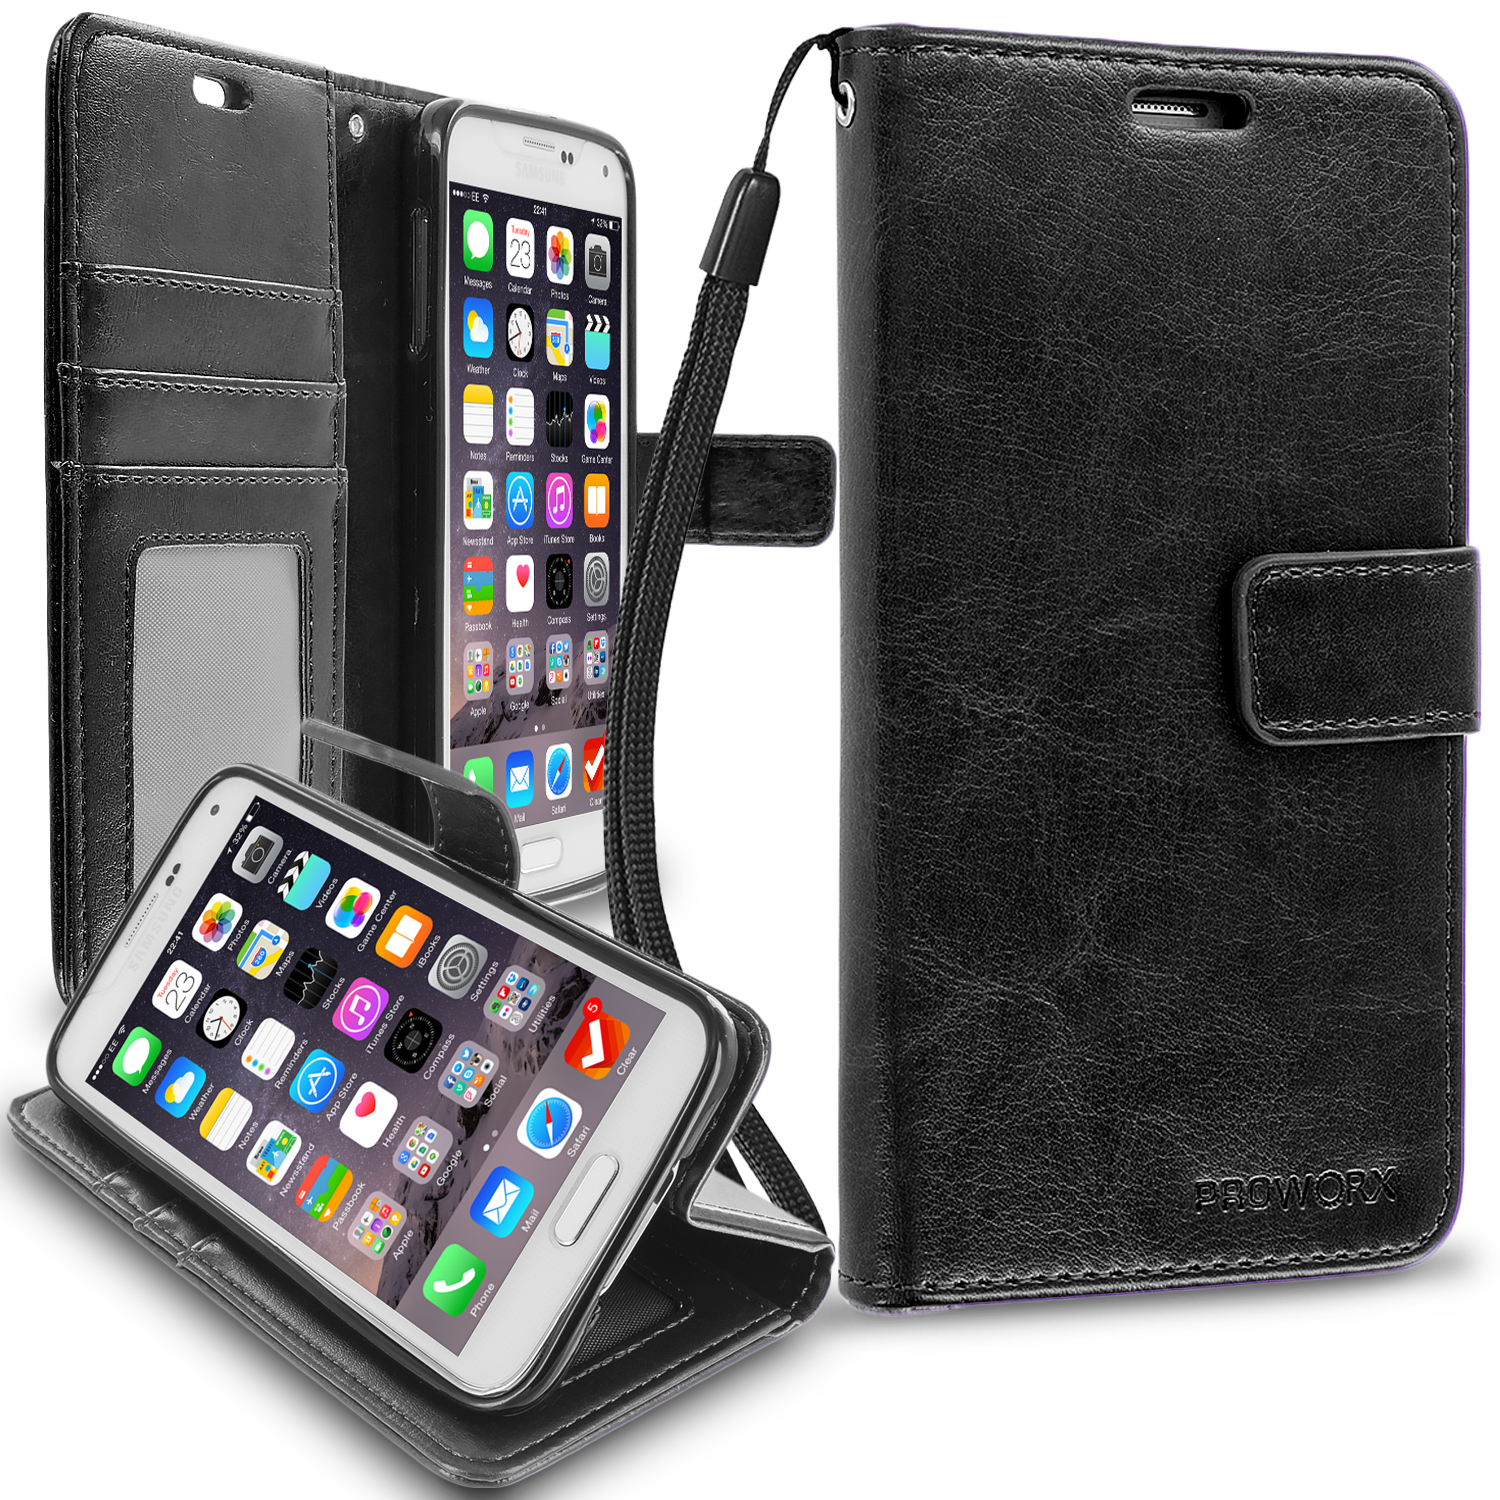 Samsung Galaxy S5 Black ProWorx Wallet Case Luxury PU Leather Case Cover With Card Slots & Stand